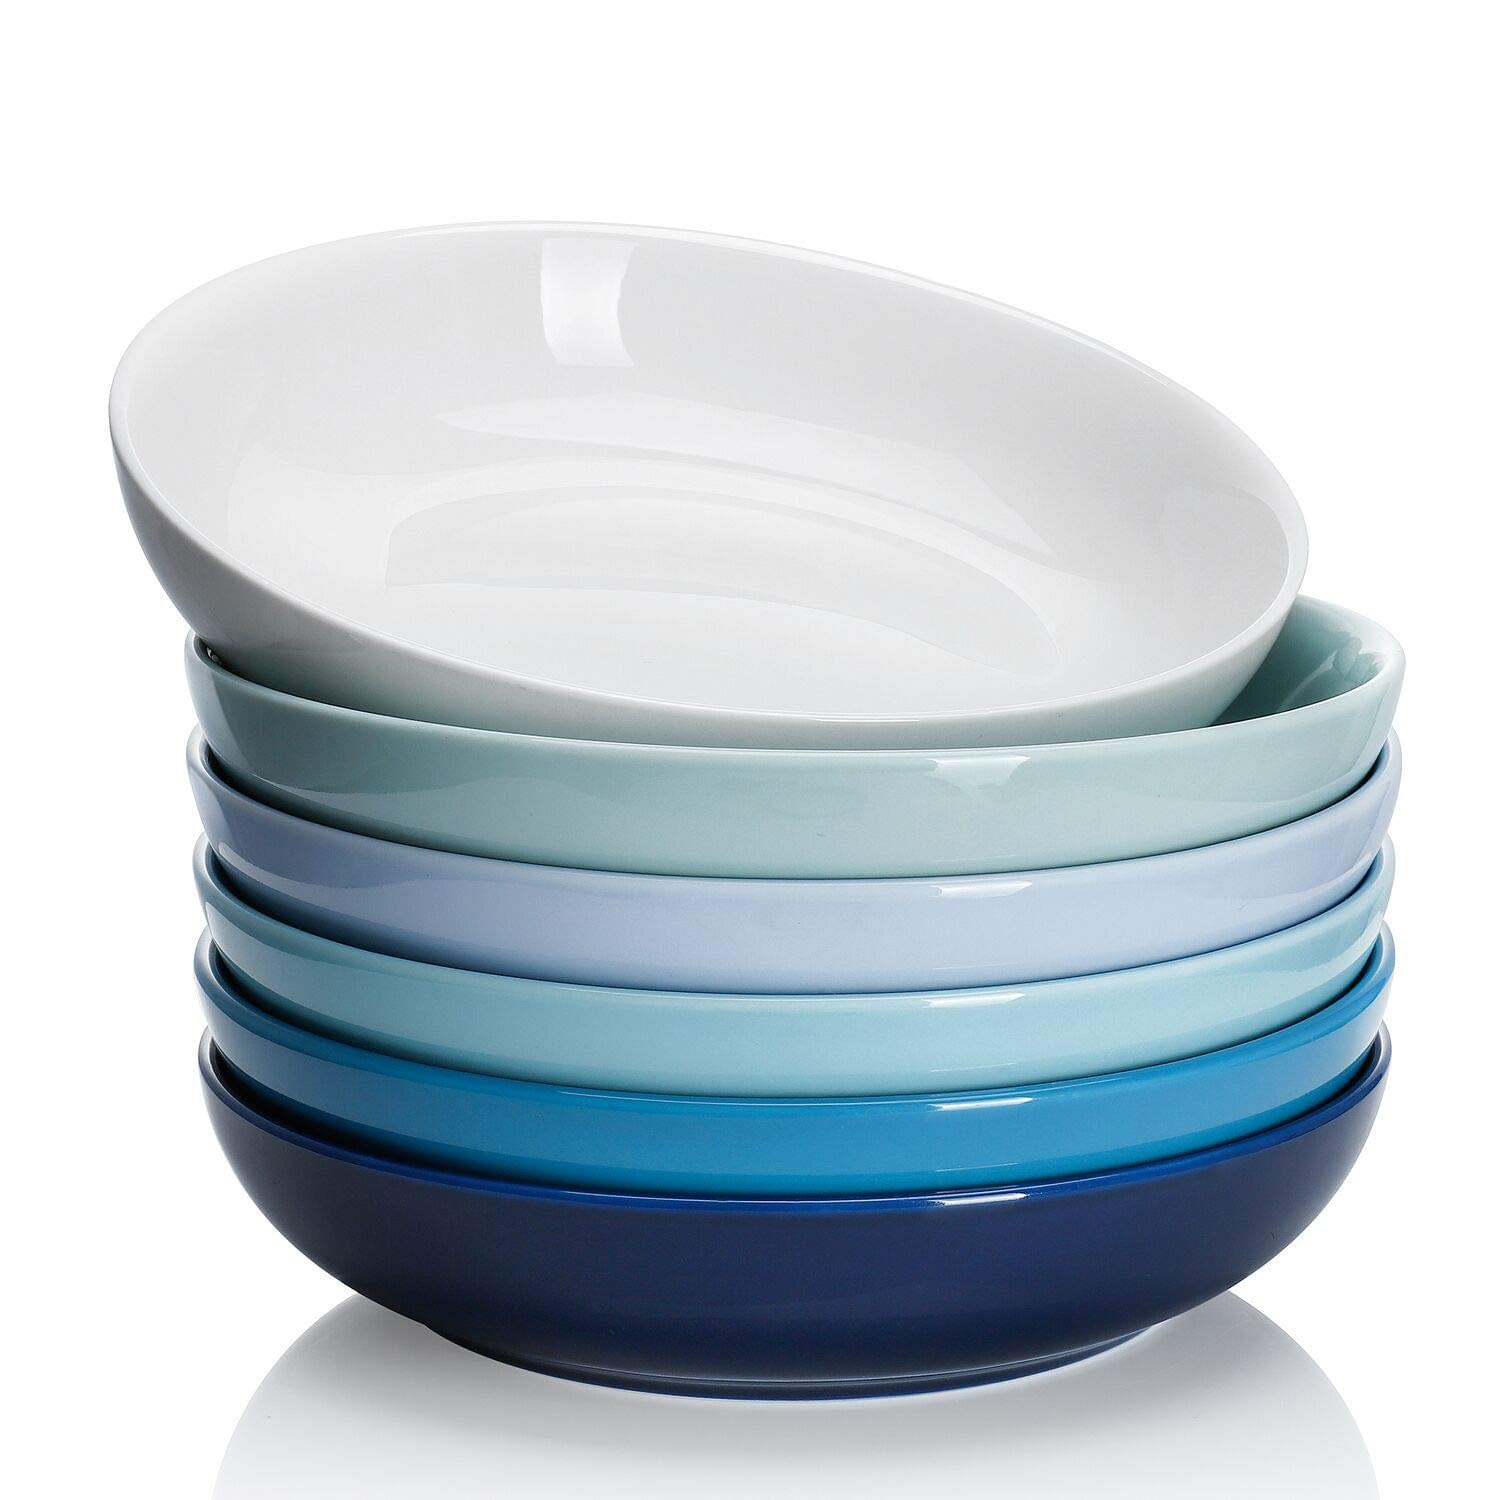 Best porcelain dinnerware sets